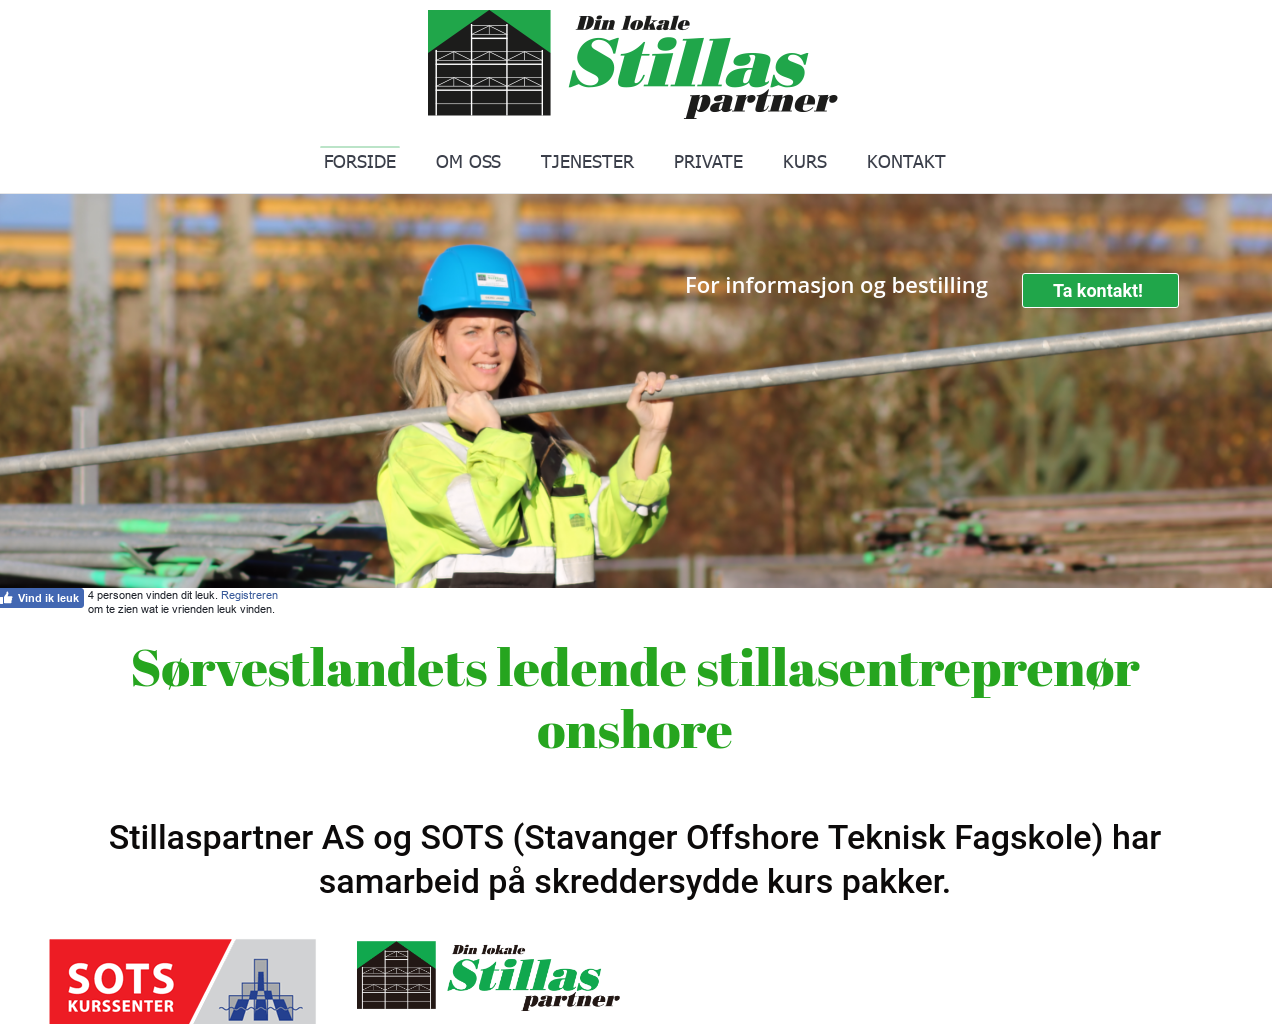 stillaspartner.no presentation